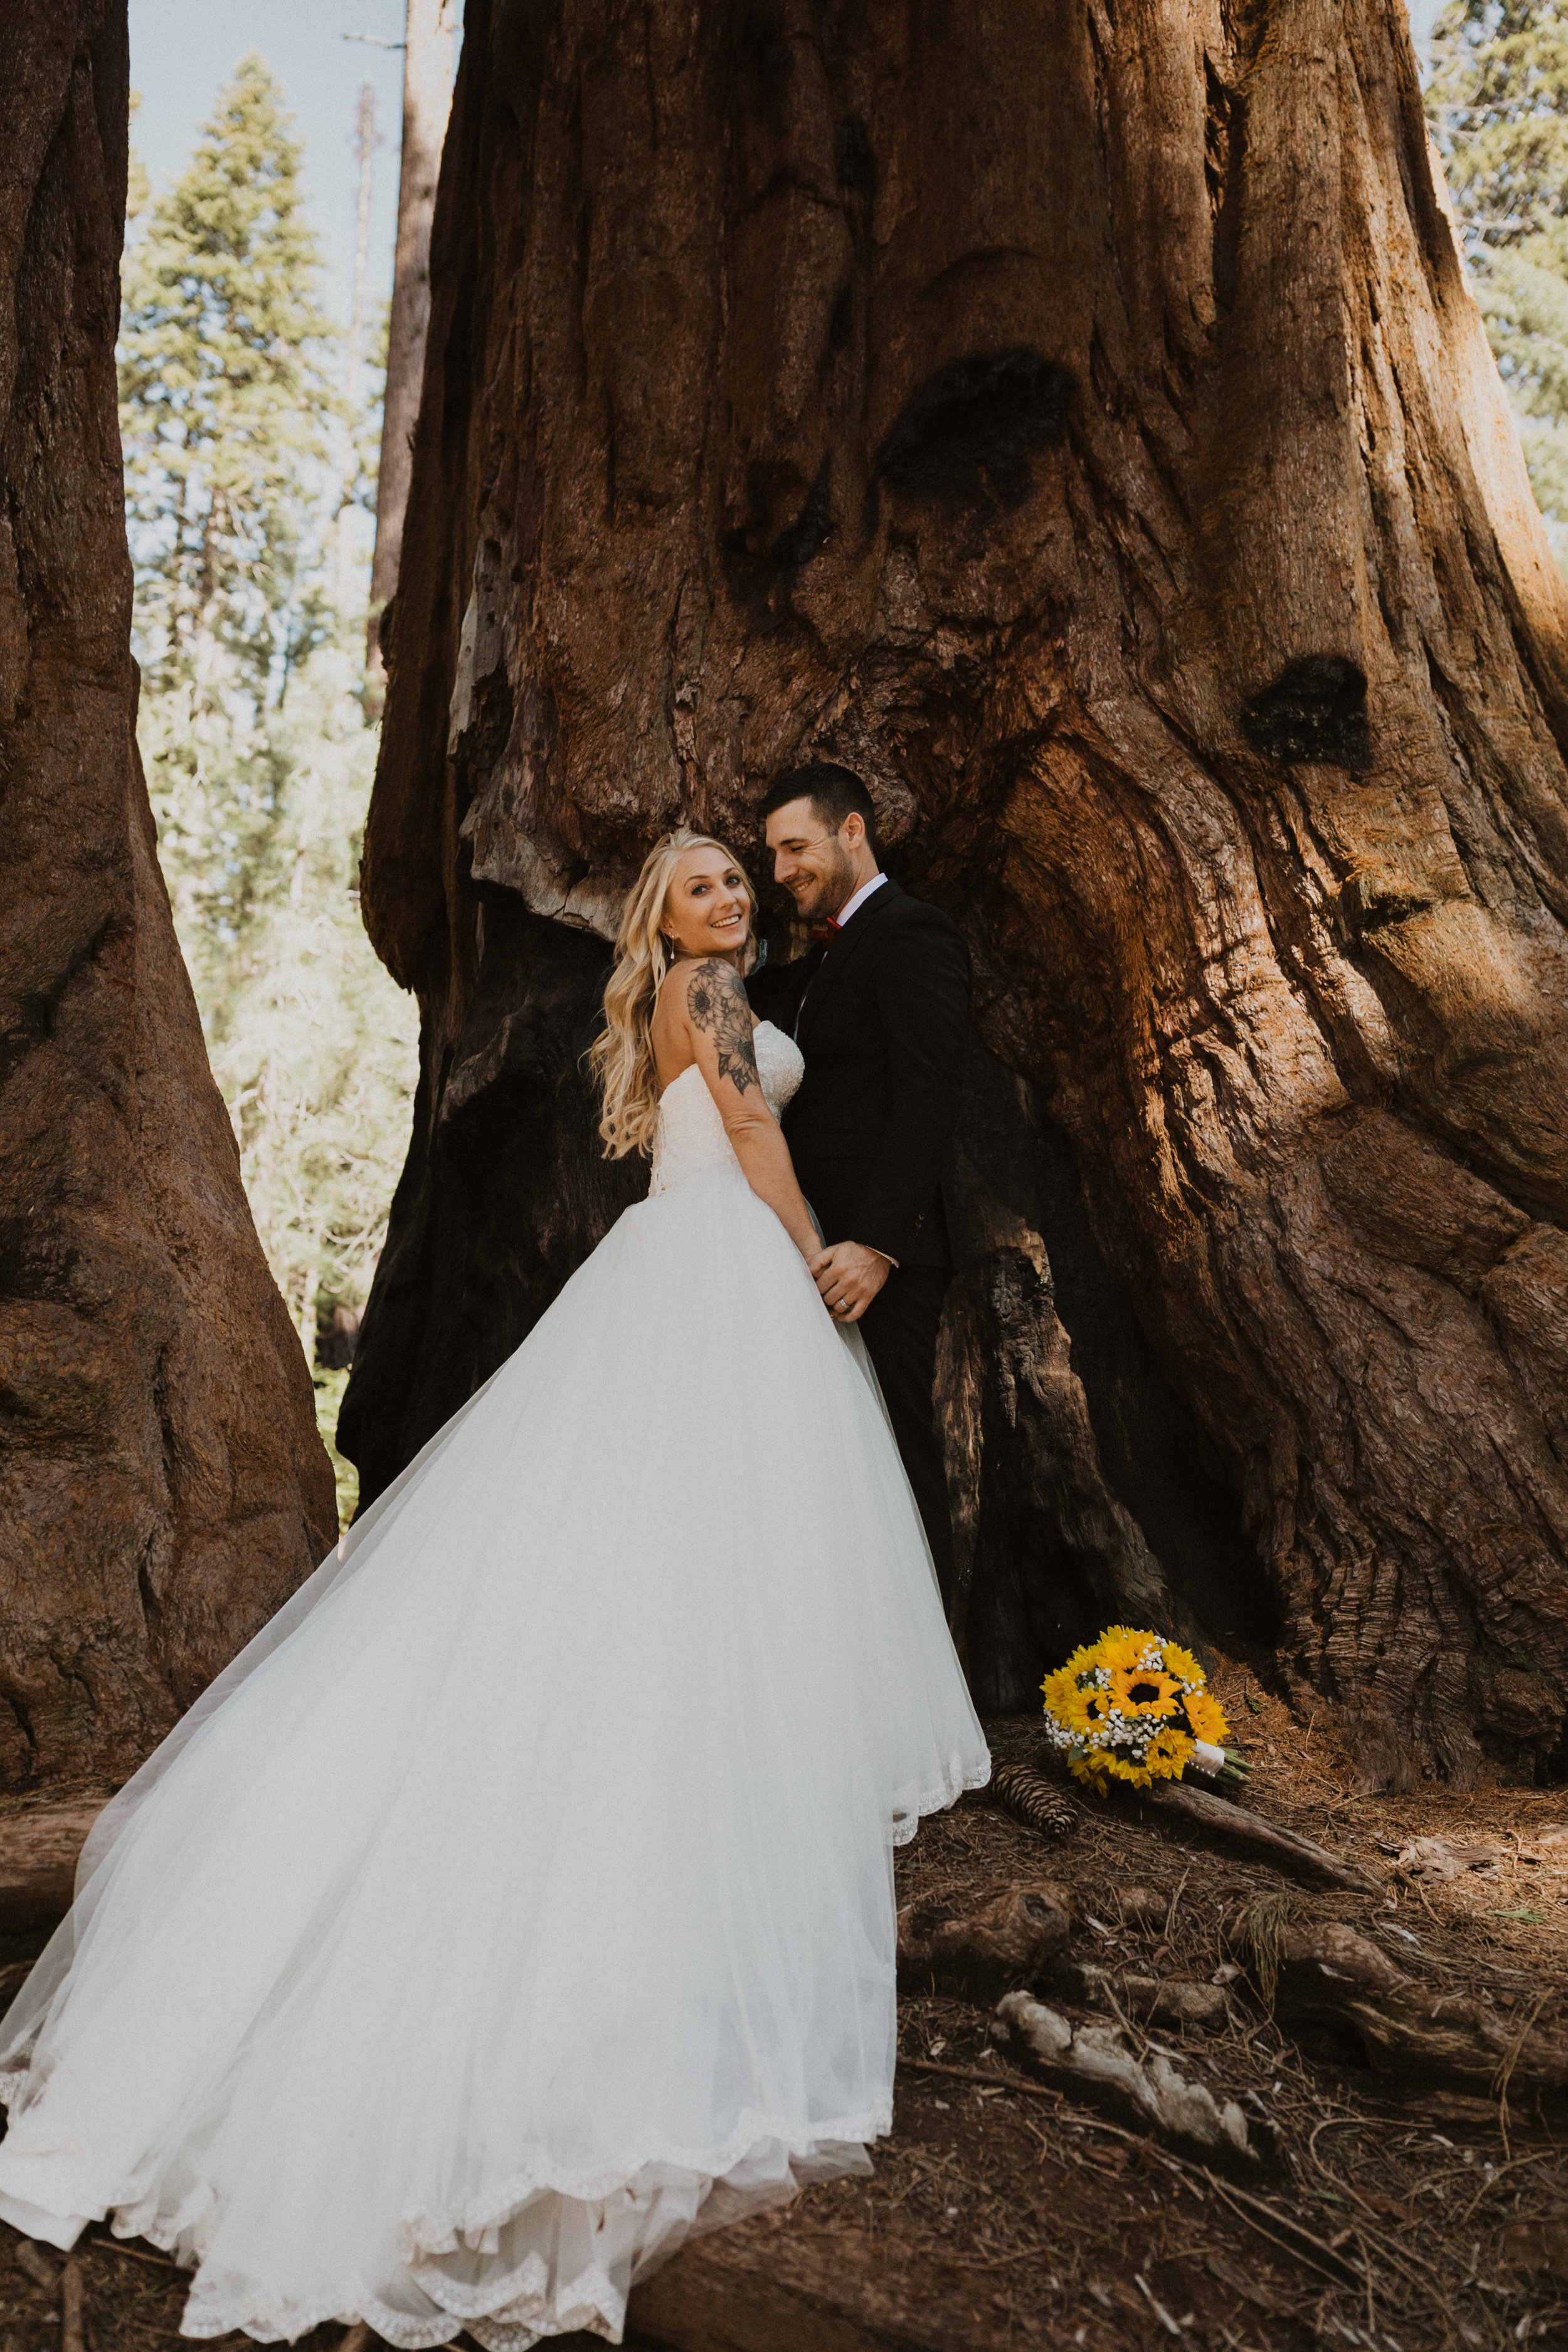 K+A_Sequoia_Elopement-193.jpg